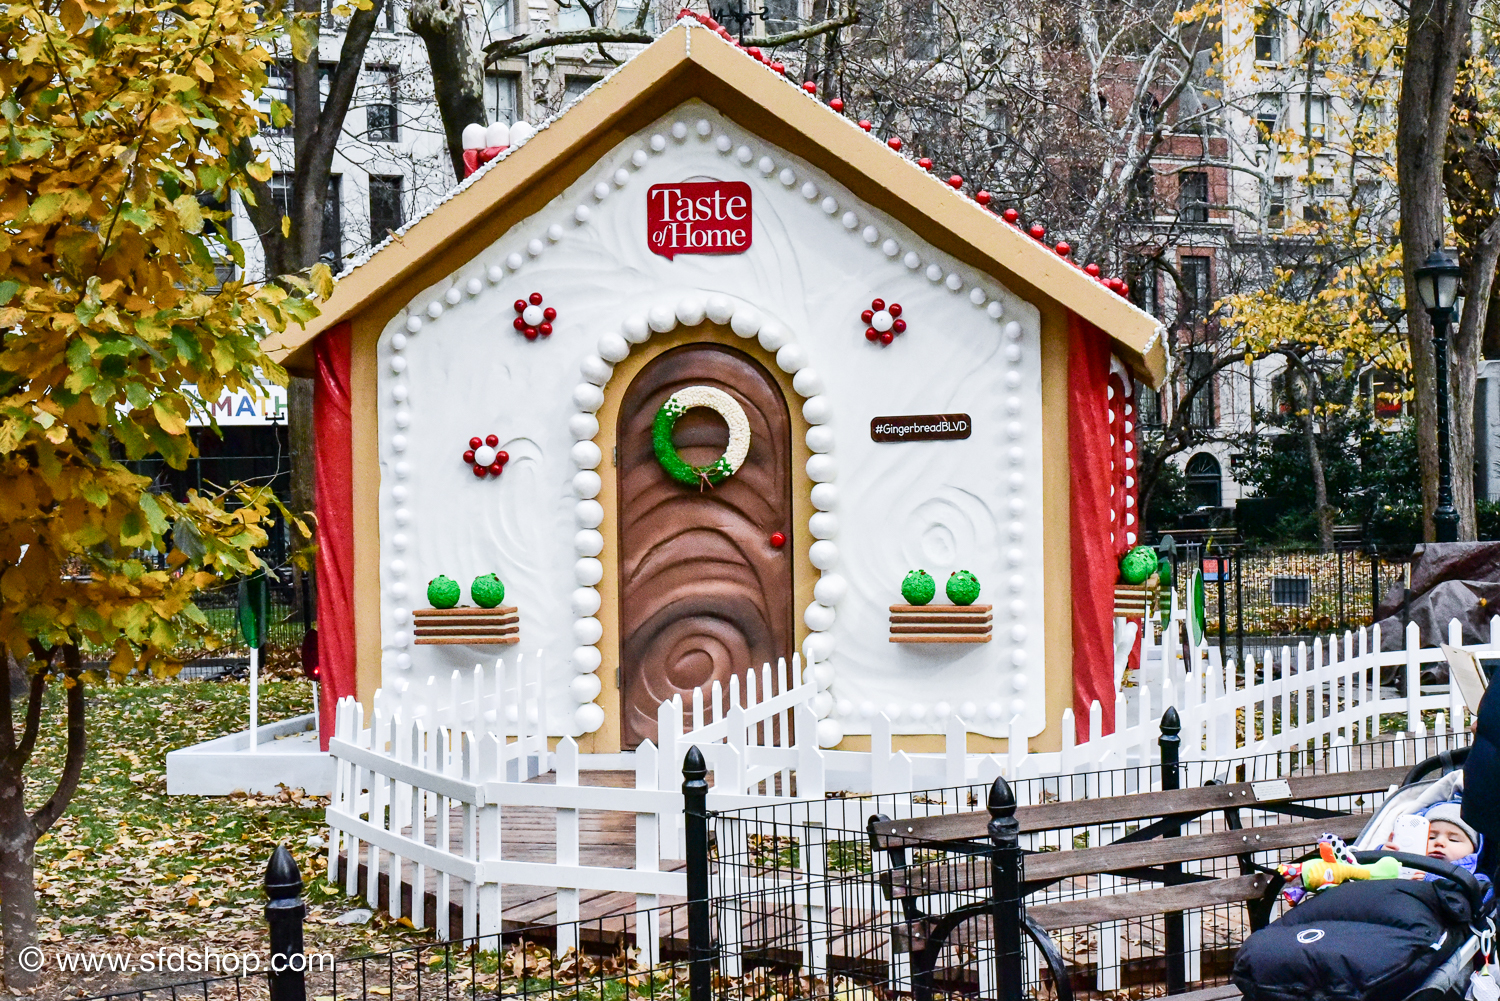 Taste of Home Gingerbread Blvd 2017 fabricated by SFDS-11.jpg